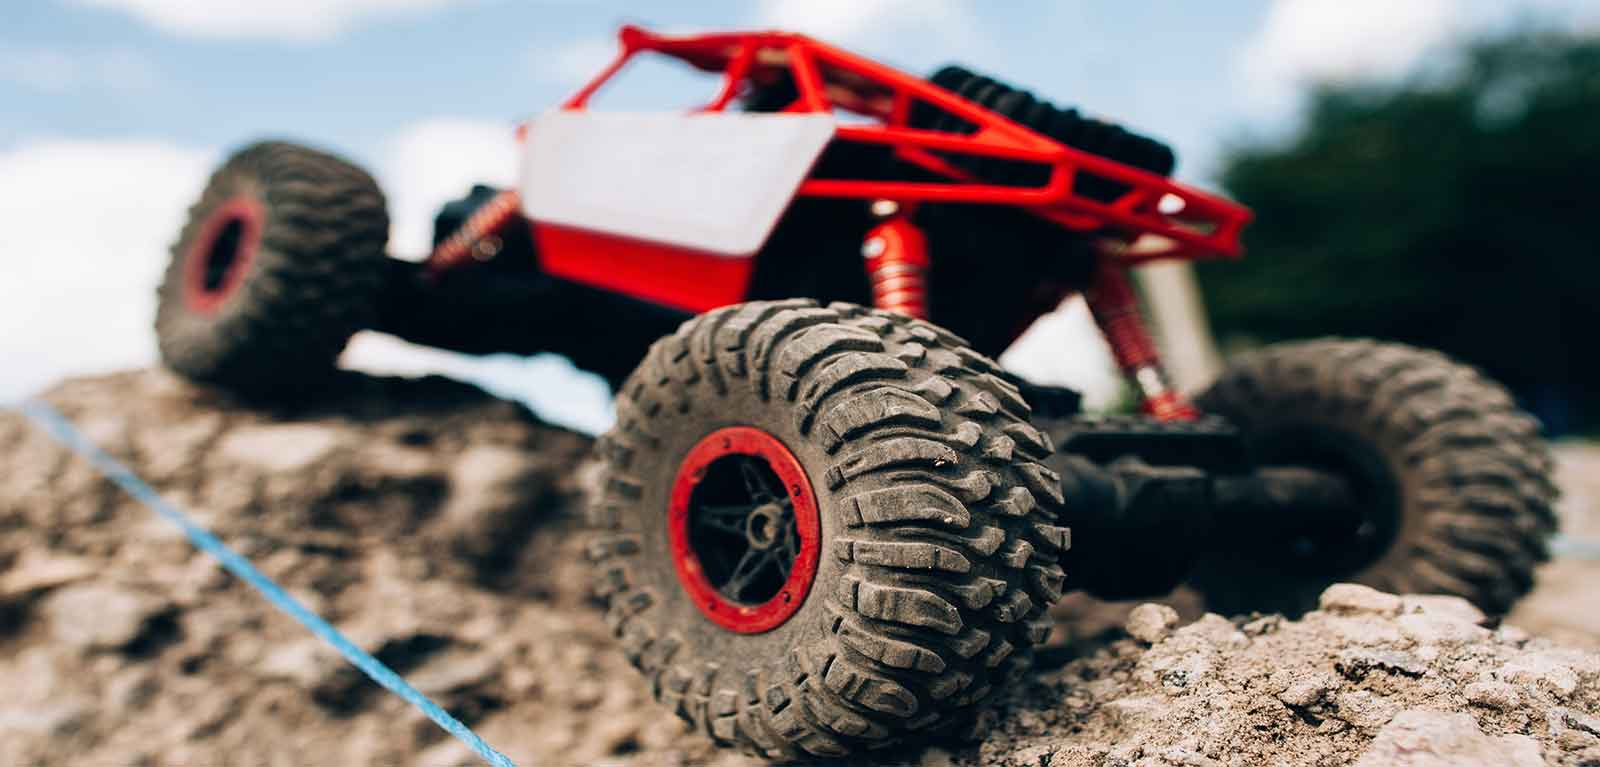 Best RC Rock Crawlers: Reviews and Buyers Guide for 2018 | RC Gear Lab